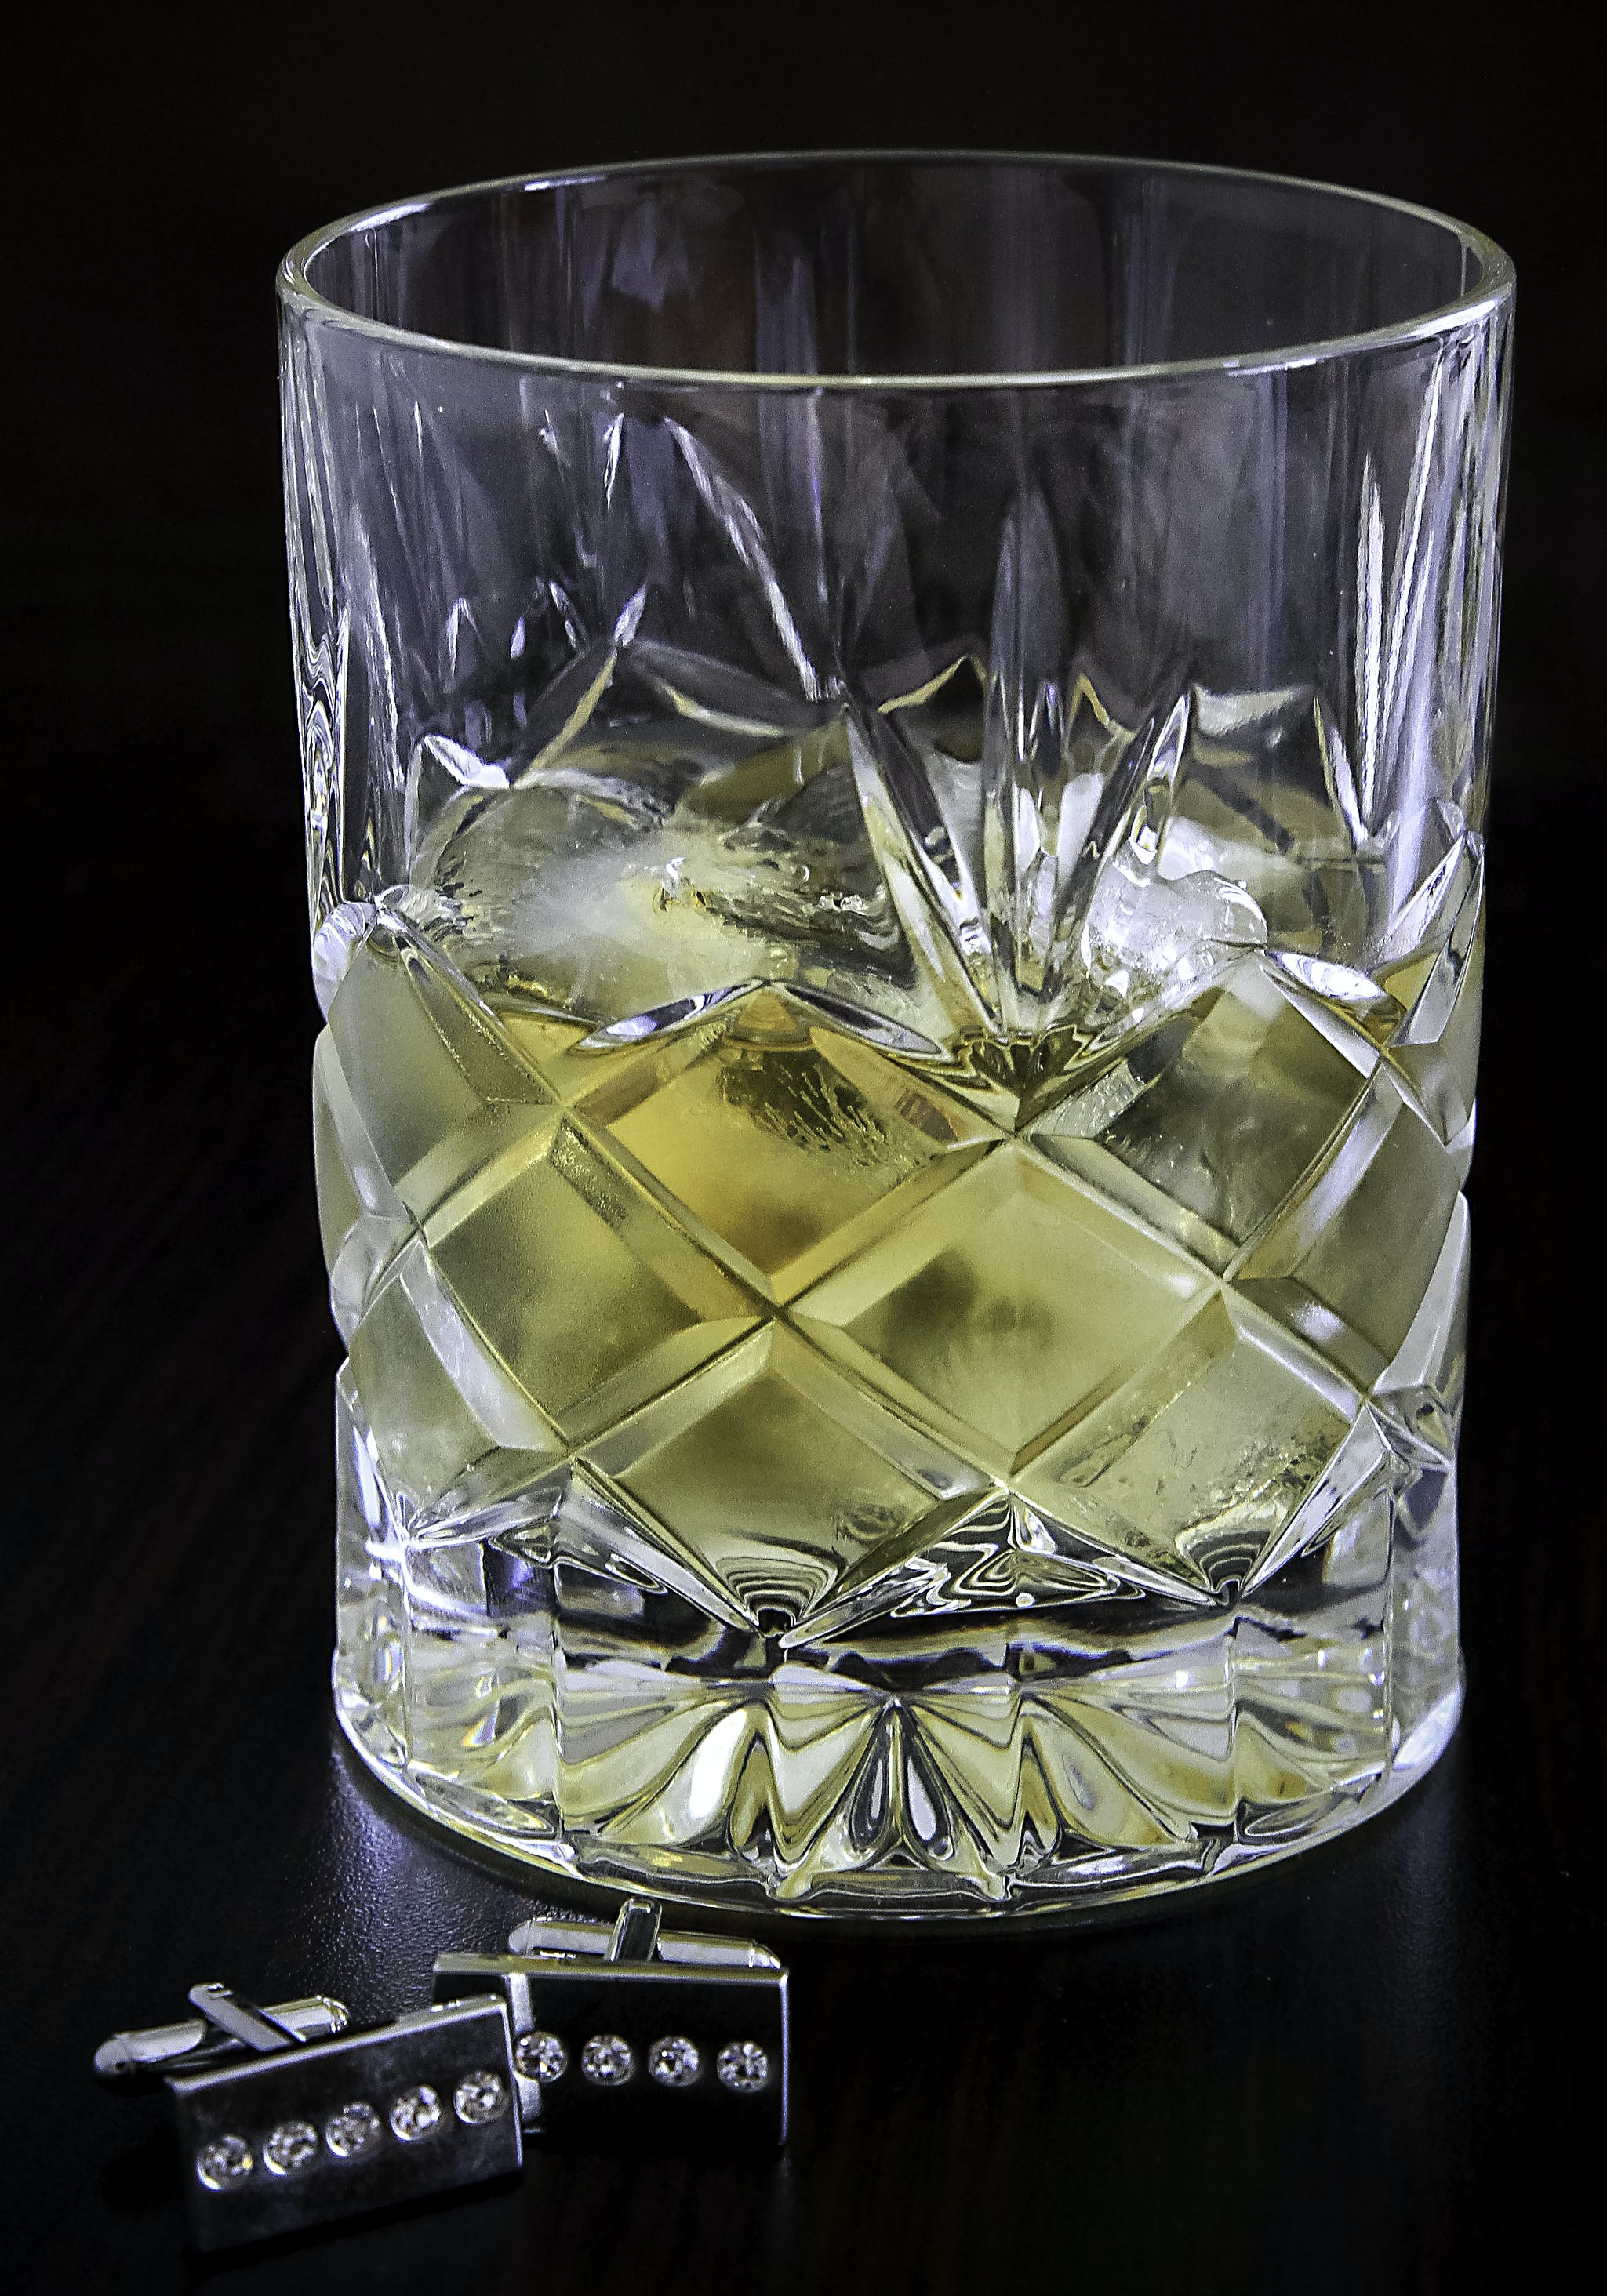 Free stock photo of glass, timeout, whiskey